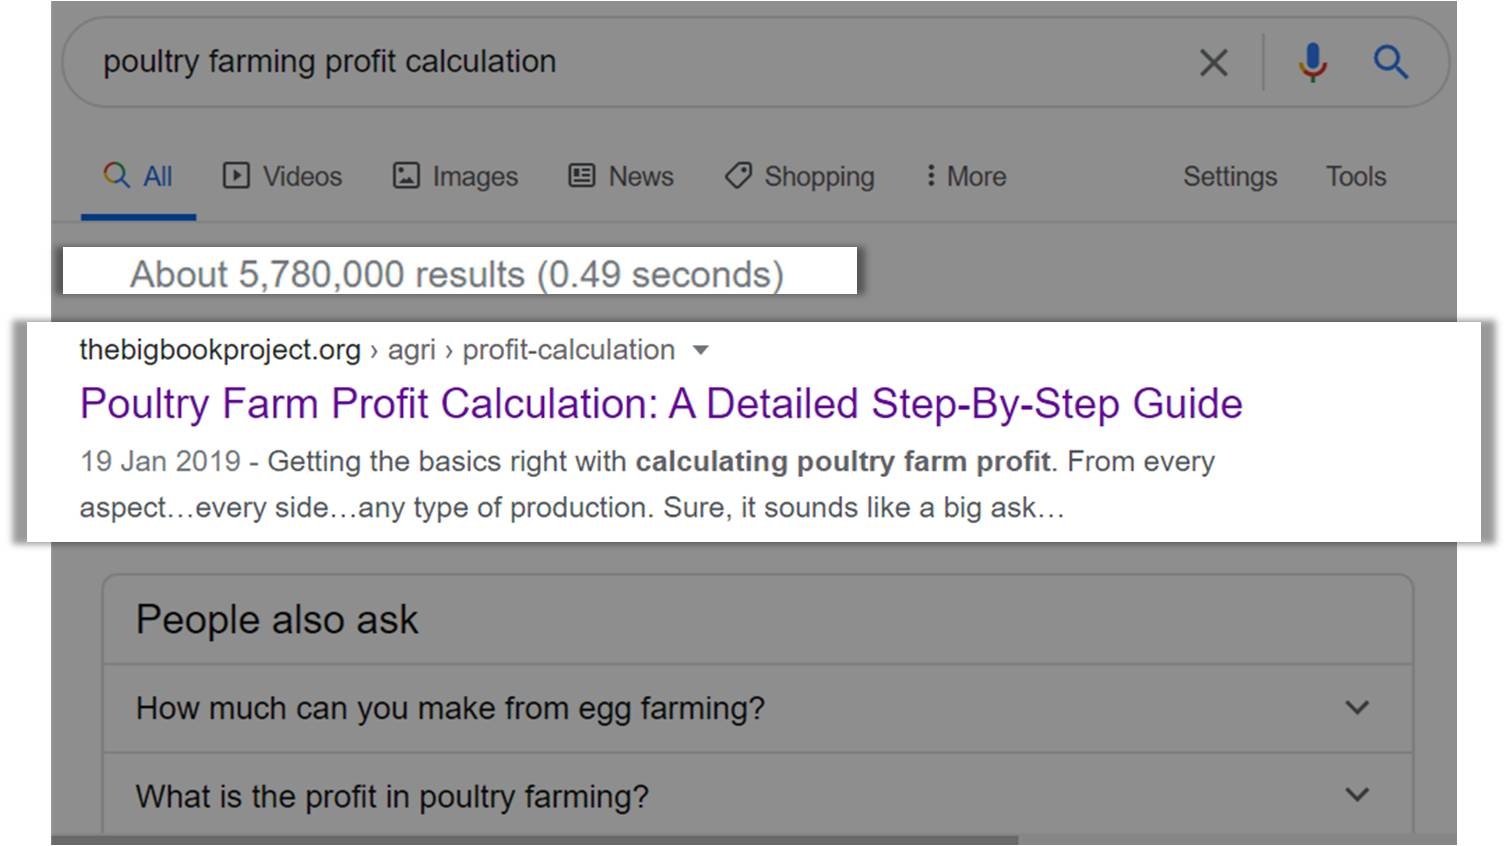 SERP - Poultry Farming Profit Calculation